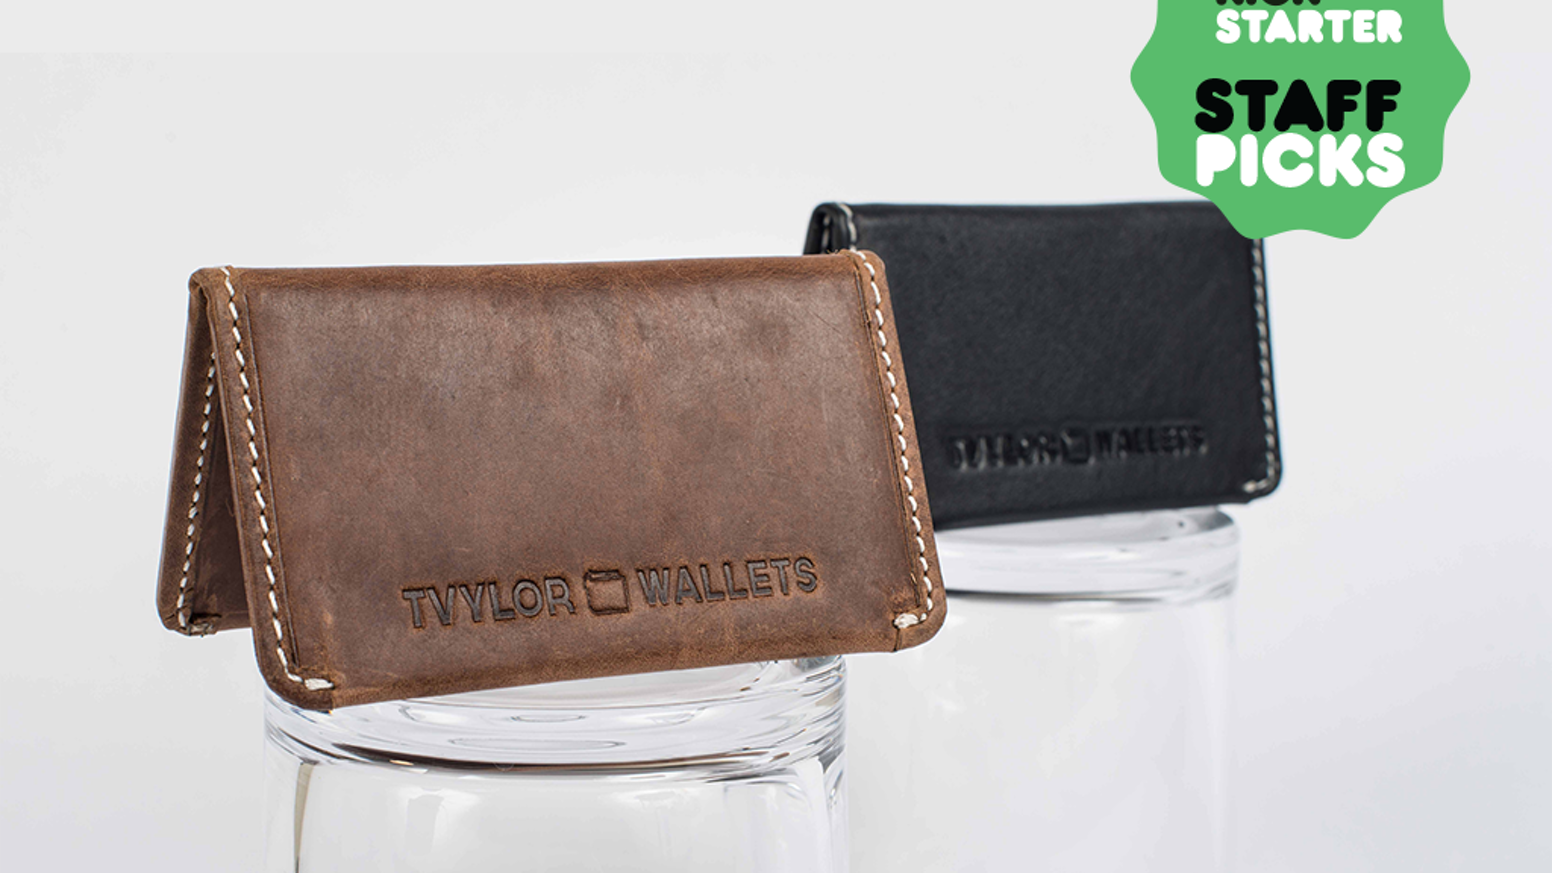 TVYLOR WALLETS by Taylor Sicard » Other Projects We Love